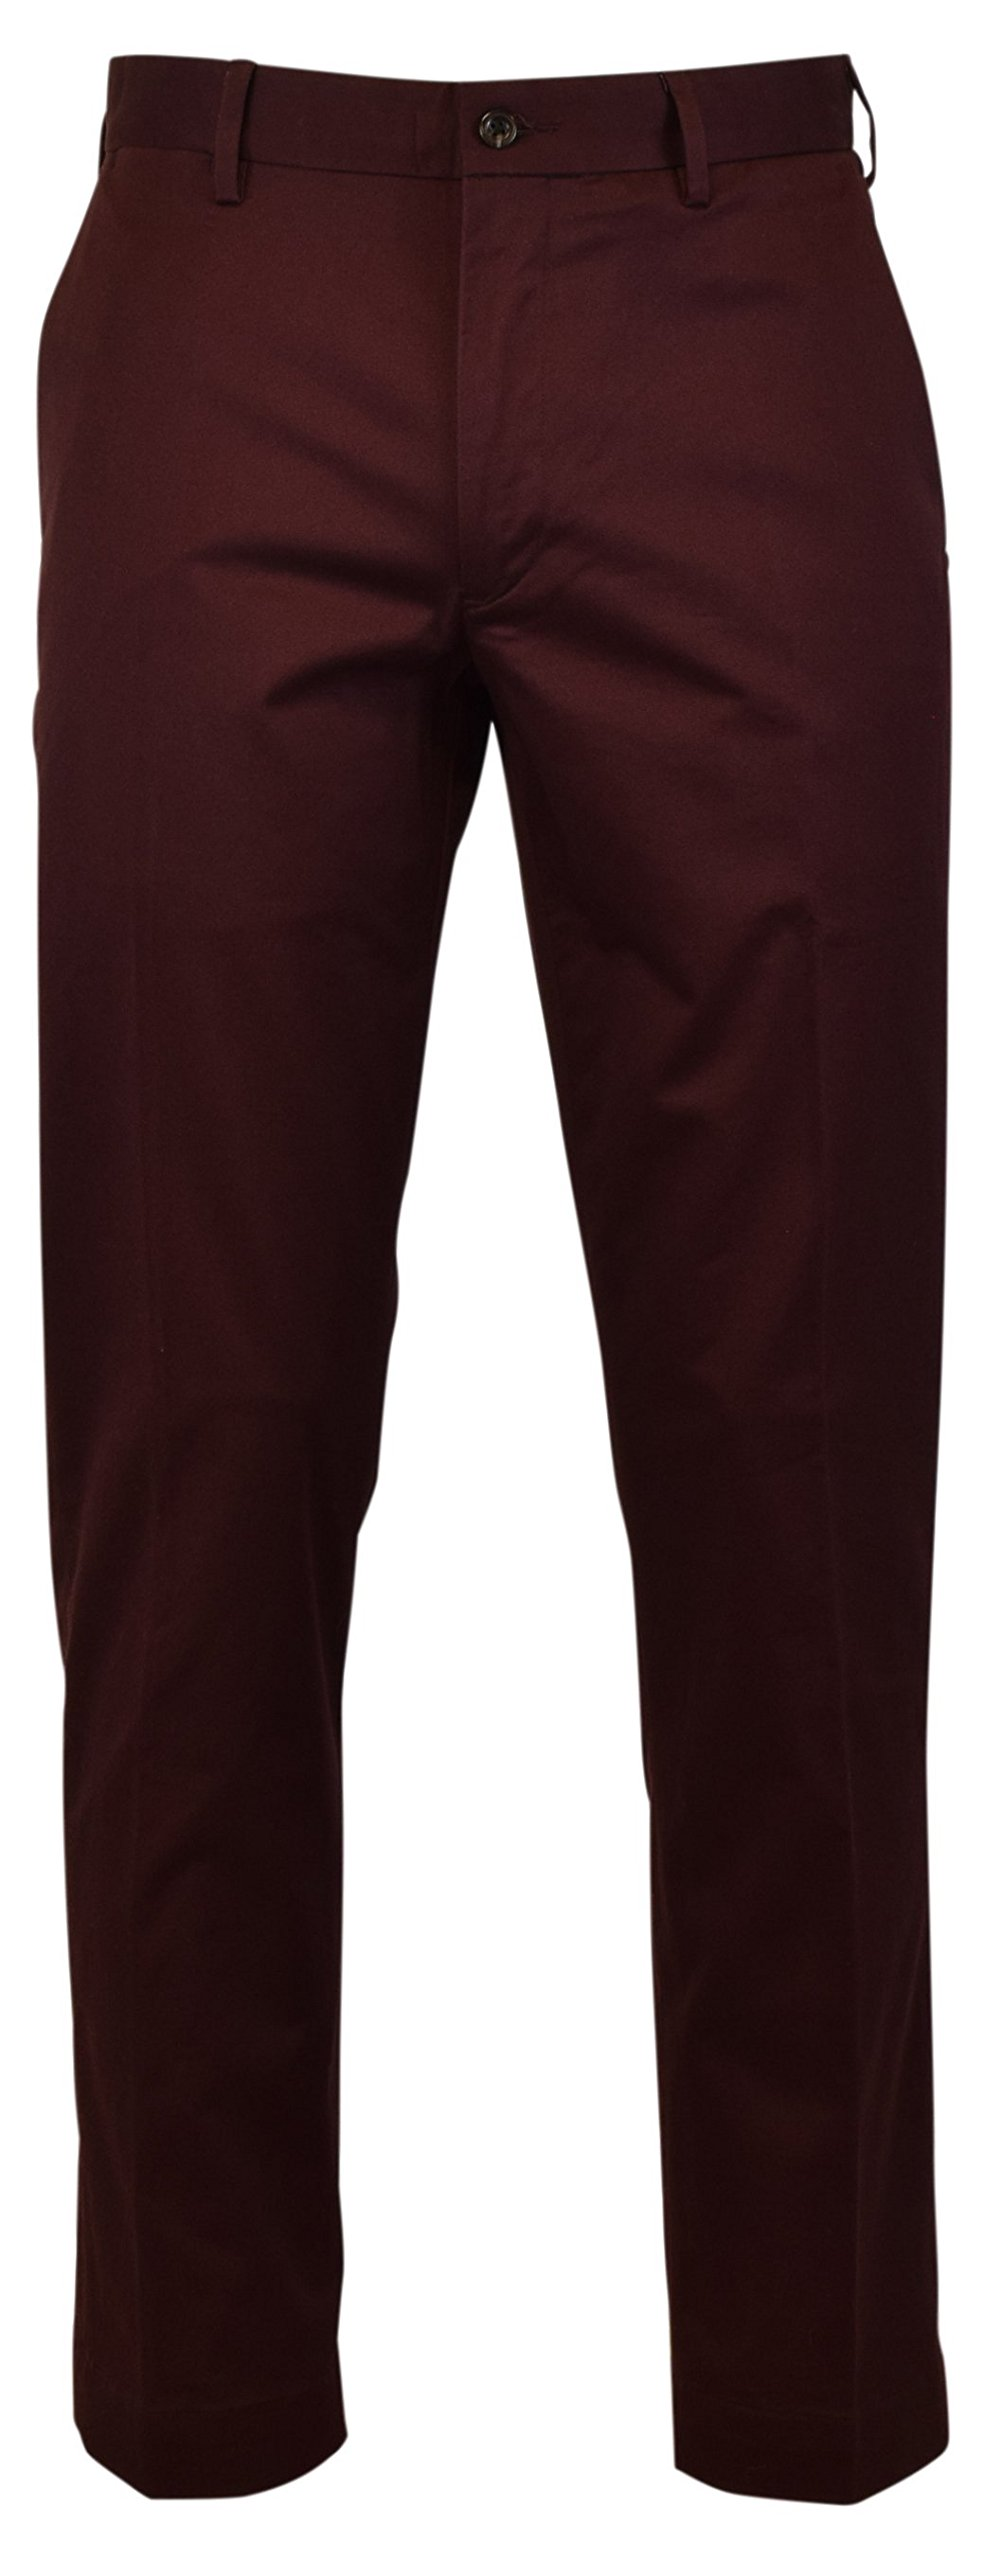 Polo Ralph Lauren Mens Classic-Fit Flat-Front Chino Pants (32x32)